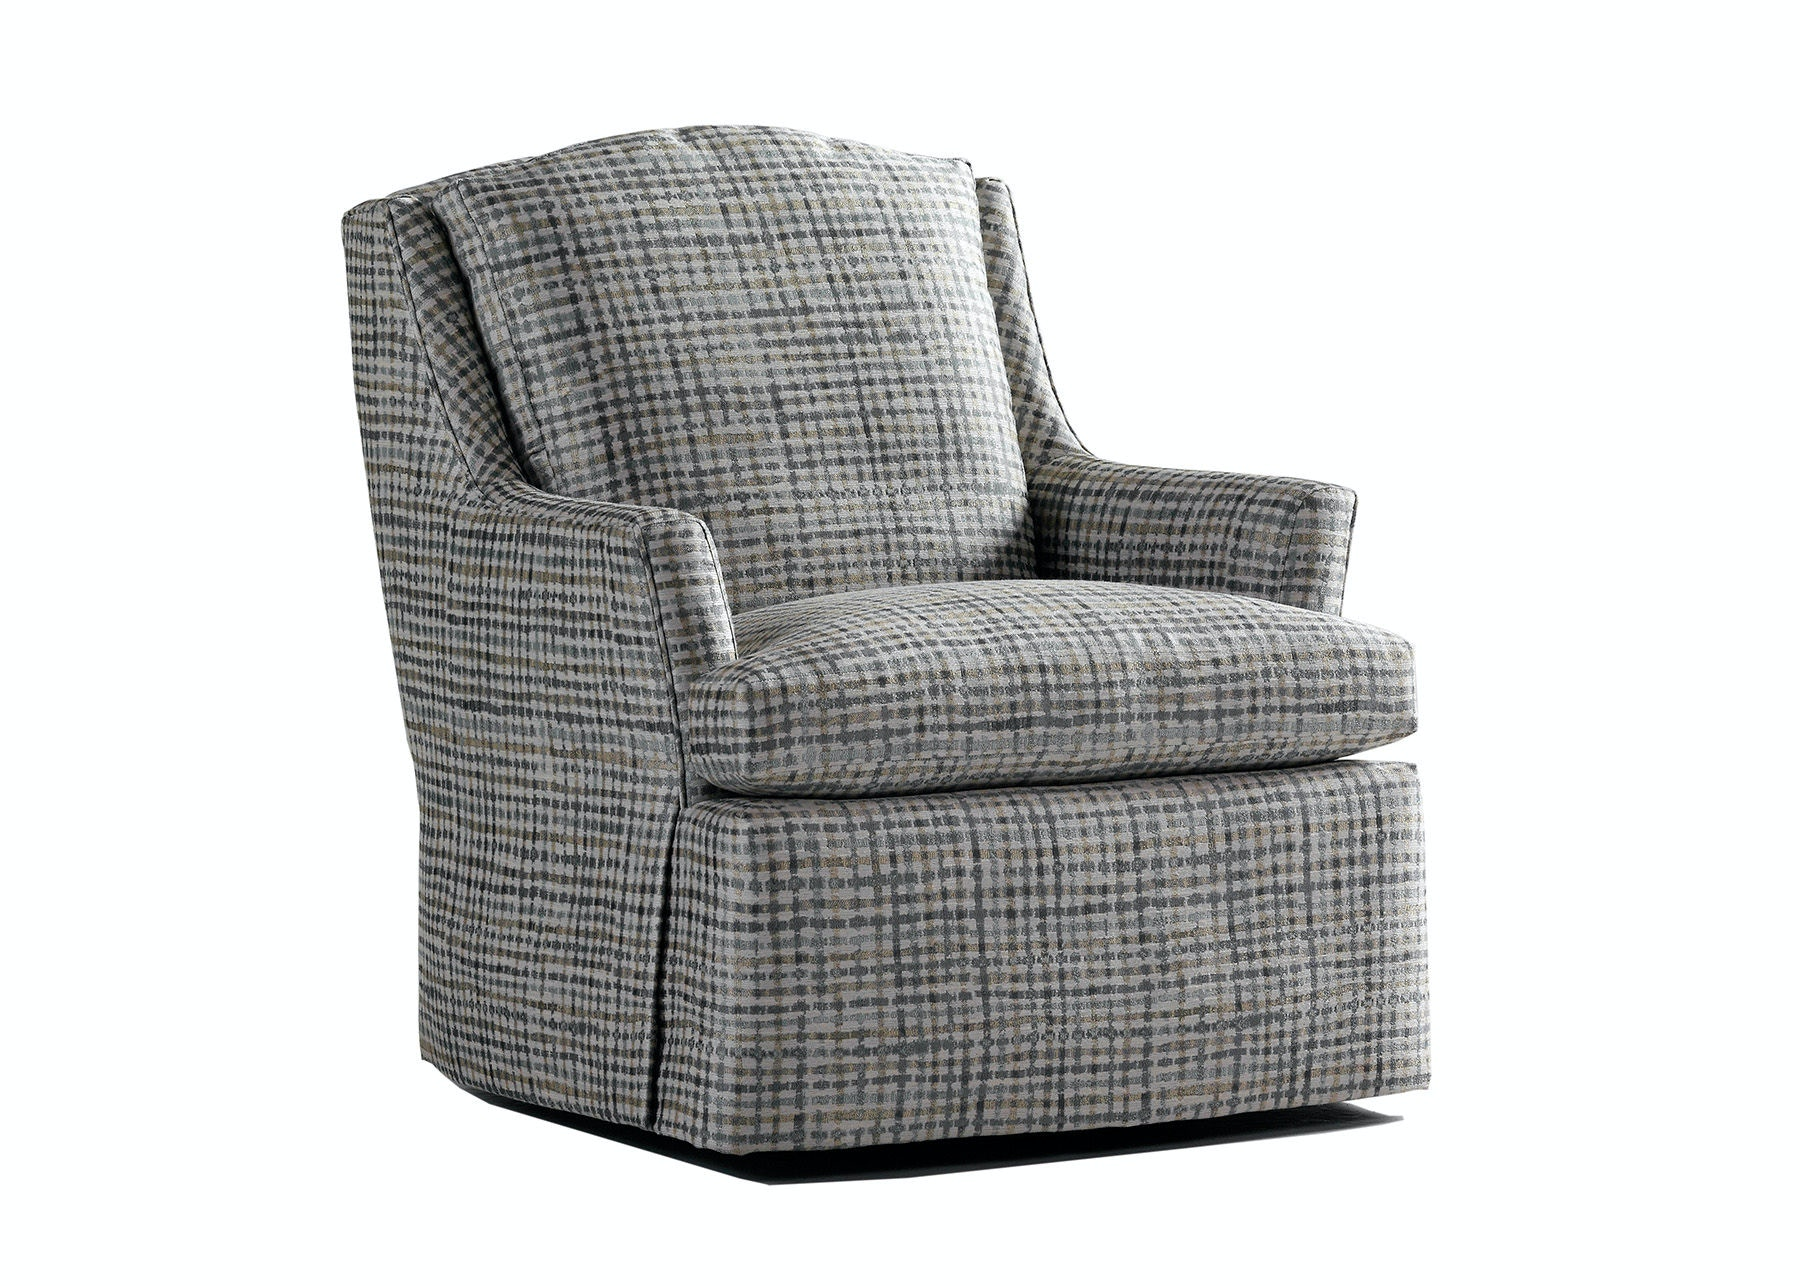 Jessica Charles Cagney Swivel Glider 298 SG